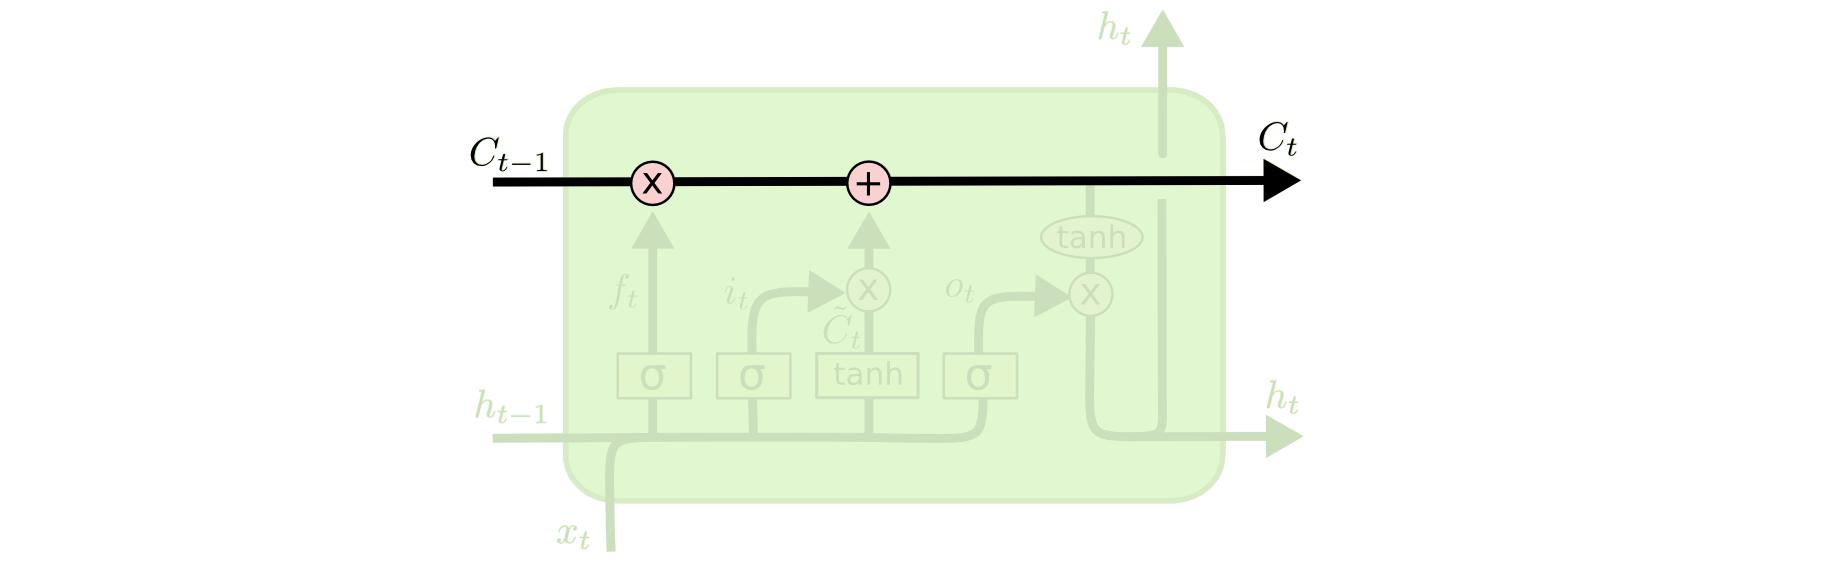 Understanding Lstm Networks Colahs Blog And I39m Absolutely Cannot Understand This Schematic If Comparator Has The Does Have Ability To Remove Or Add Information Cell State Carefully Regulated By Structures Called Gates